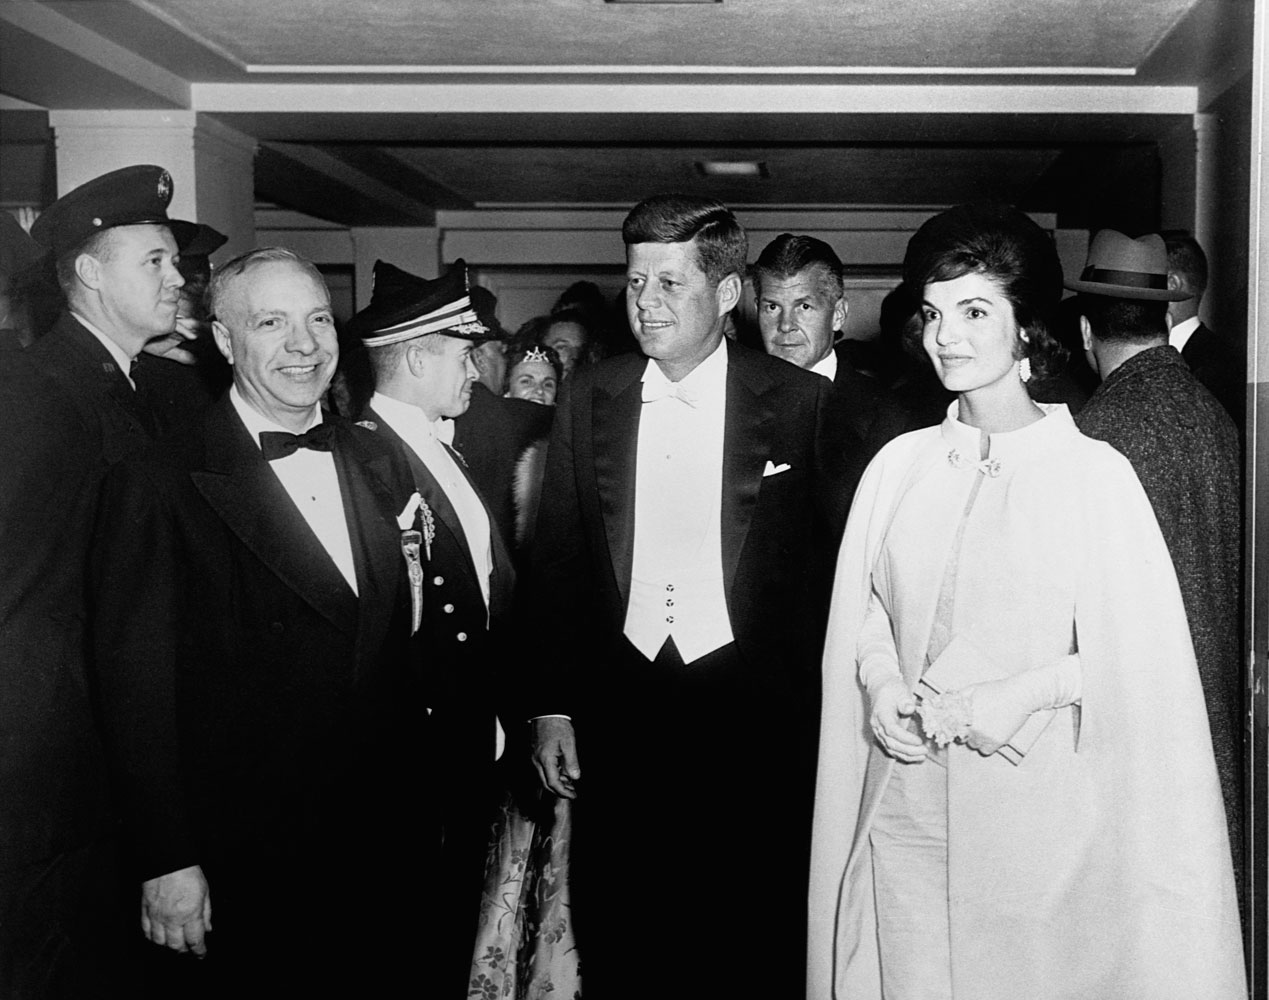 U.S. President John F. Kennedy and First Lady Jackie Kennedy at the Inaugural Ball on Jan. 20, 1961 in Washington, D.C.